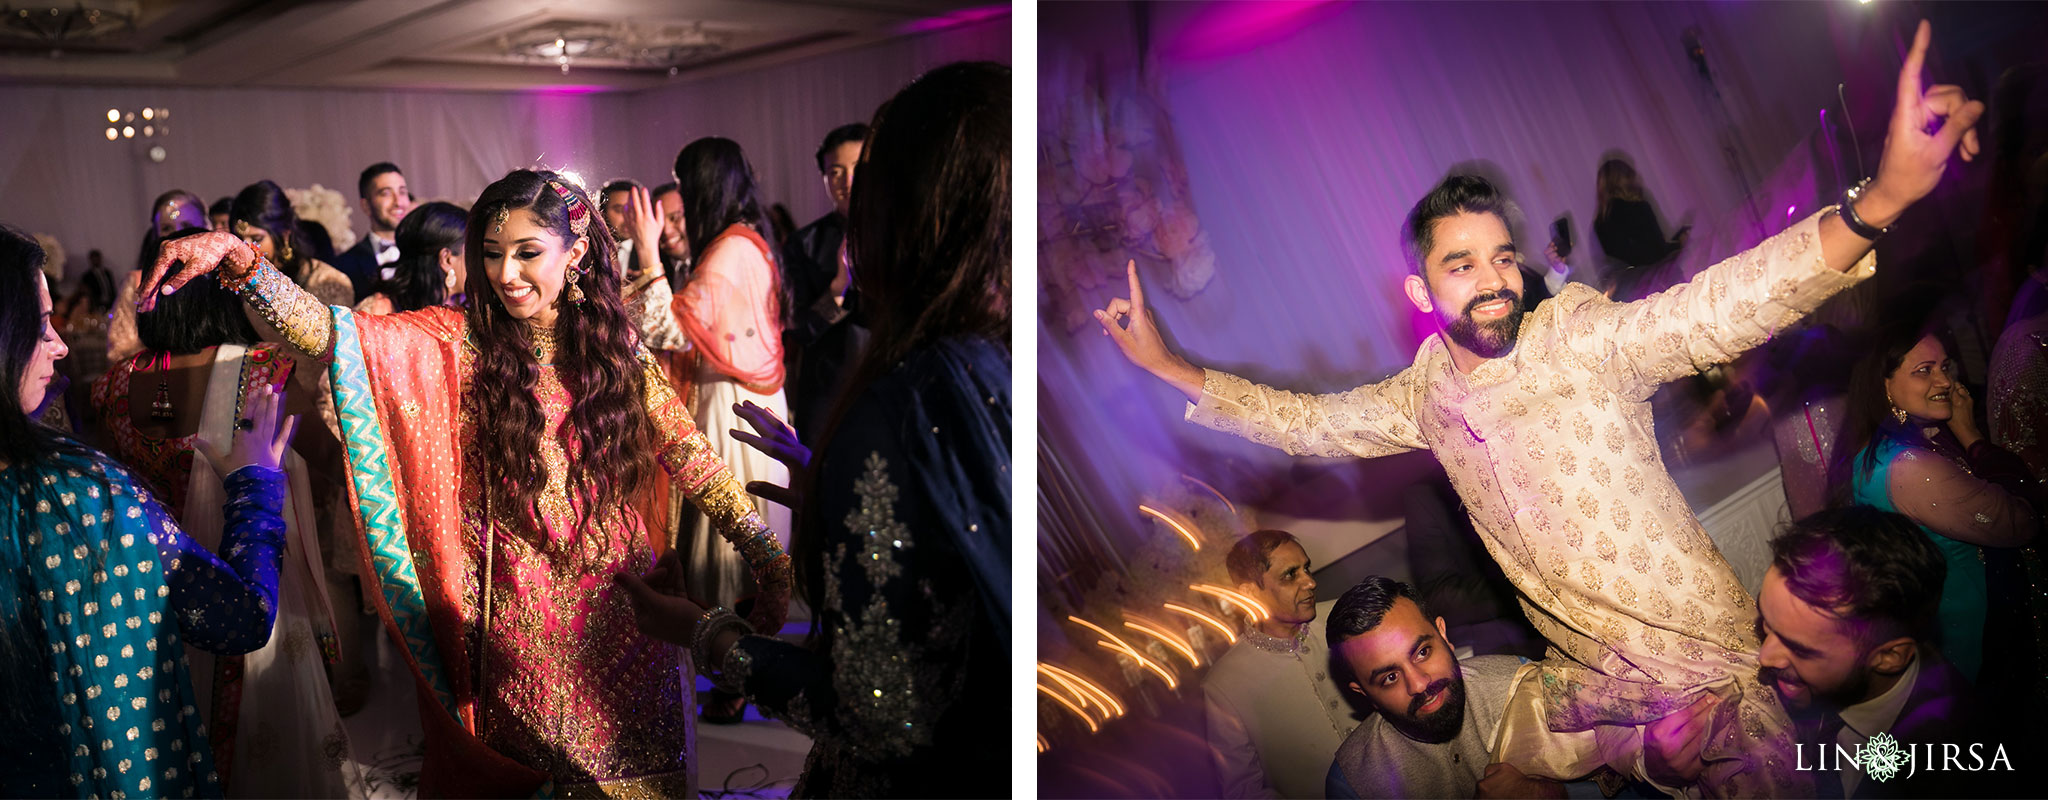 50 laguna cliffs marriott muslim wedding reception photography